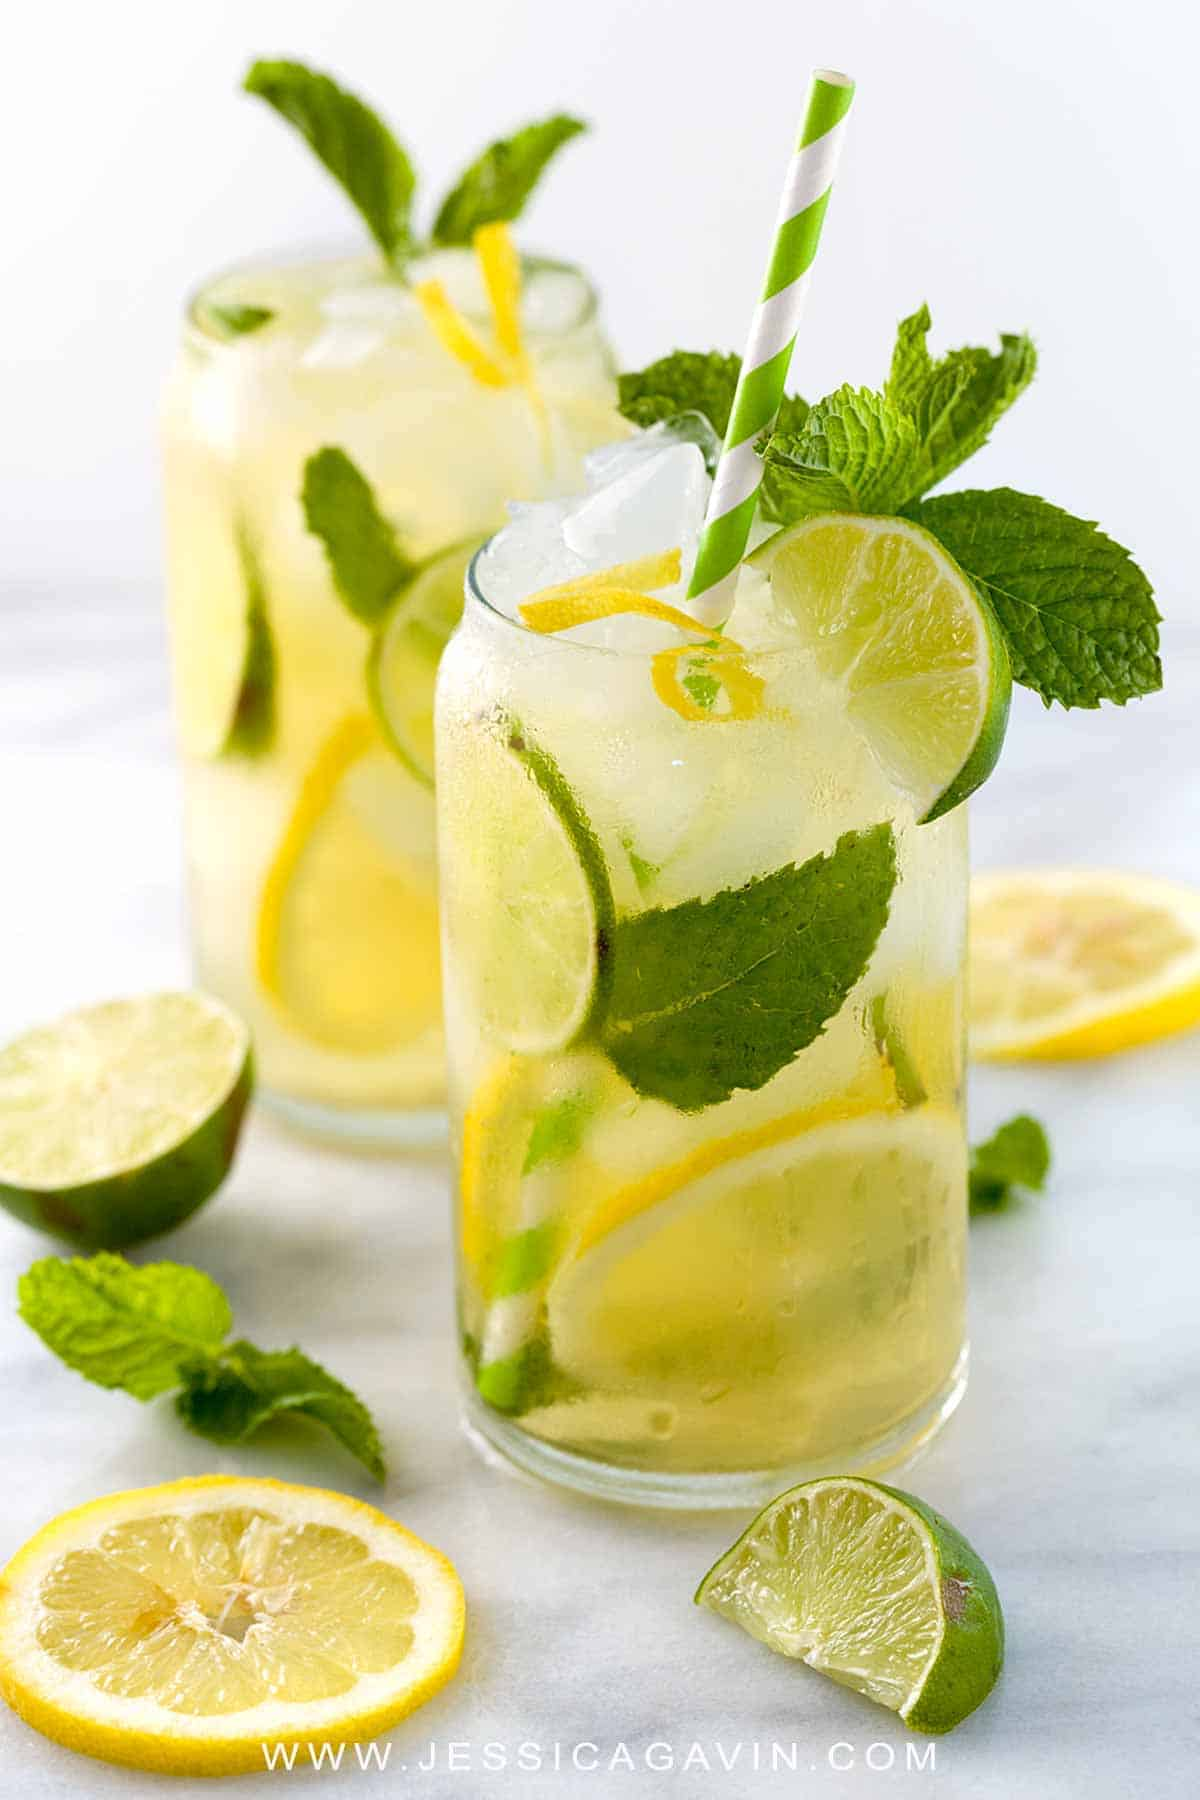 Iced green tea with lemon, lime, and fresh mint is a refreshing and revitalizing beverage for those warm days. Each glass is naturally sweetened with honey and packed with antioxidants. #icedtea #lemonlime #drink #greentea